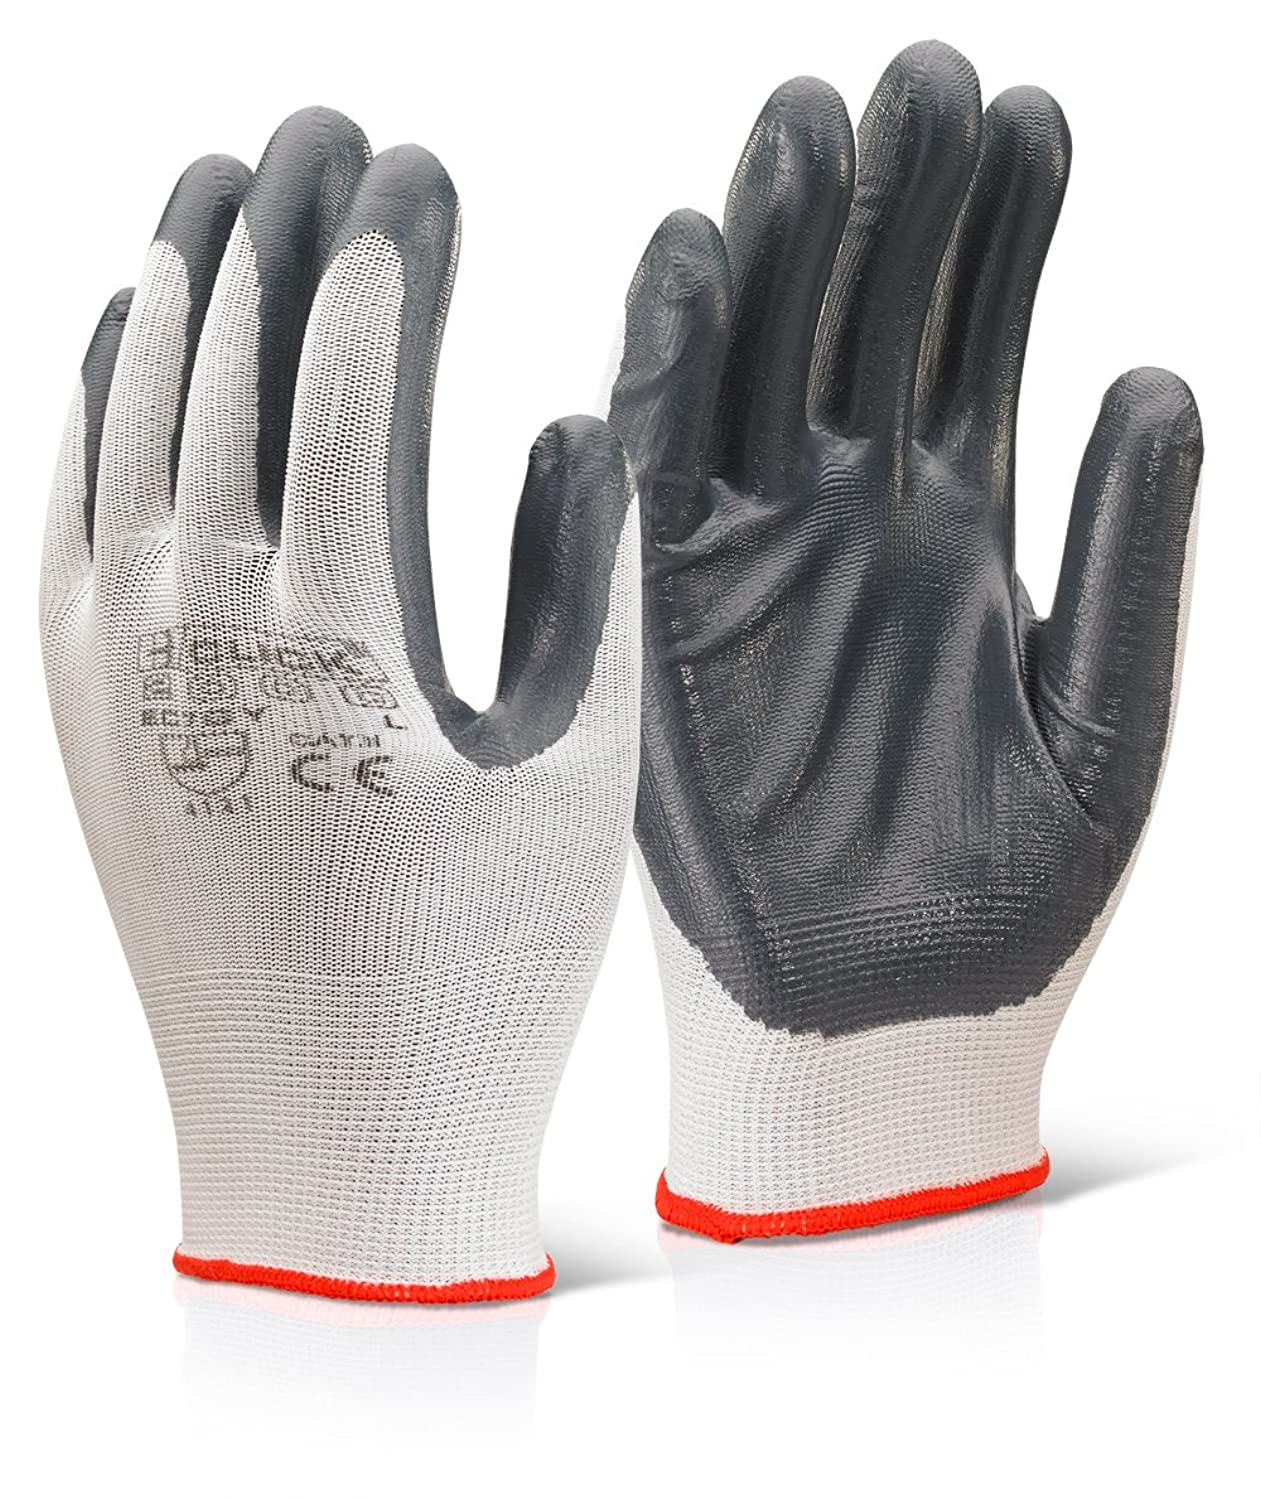 click2000 Nitril P/C Polyester Handschuh